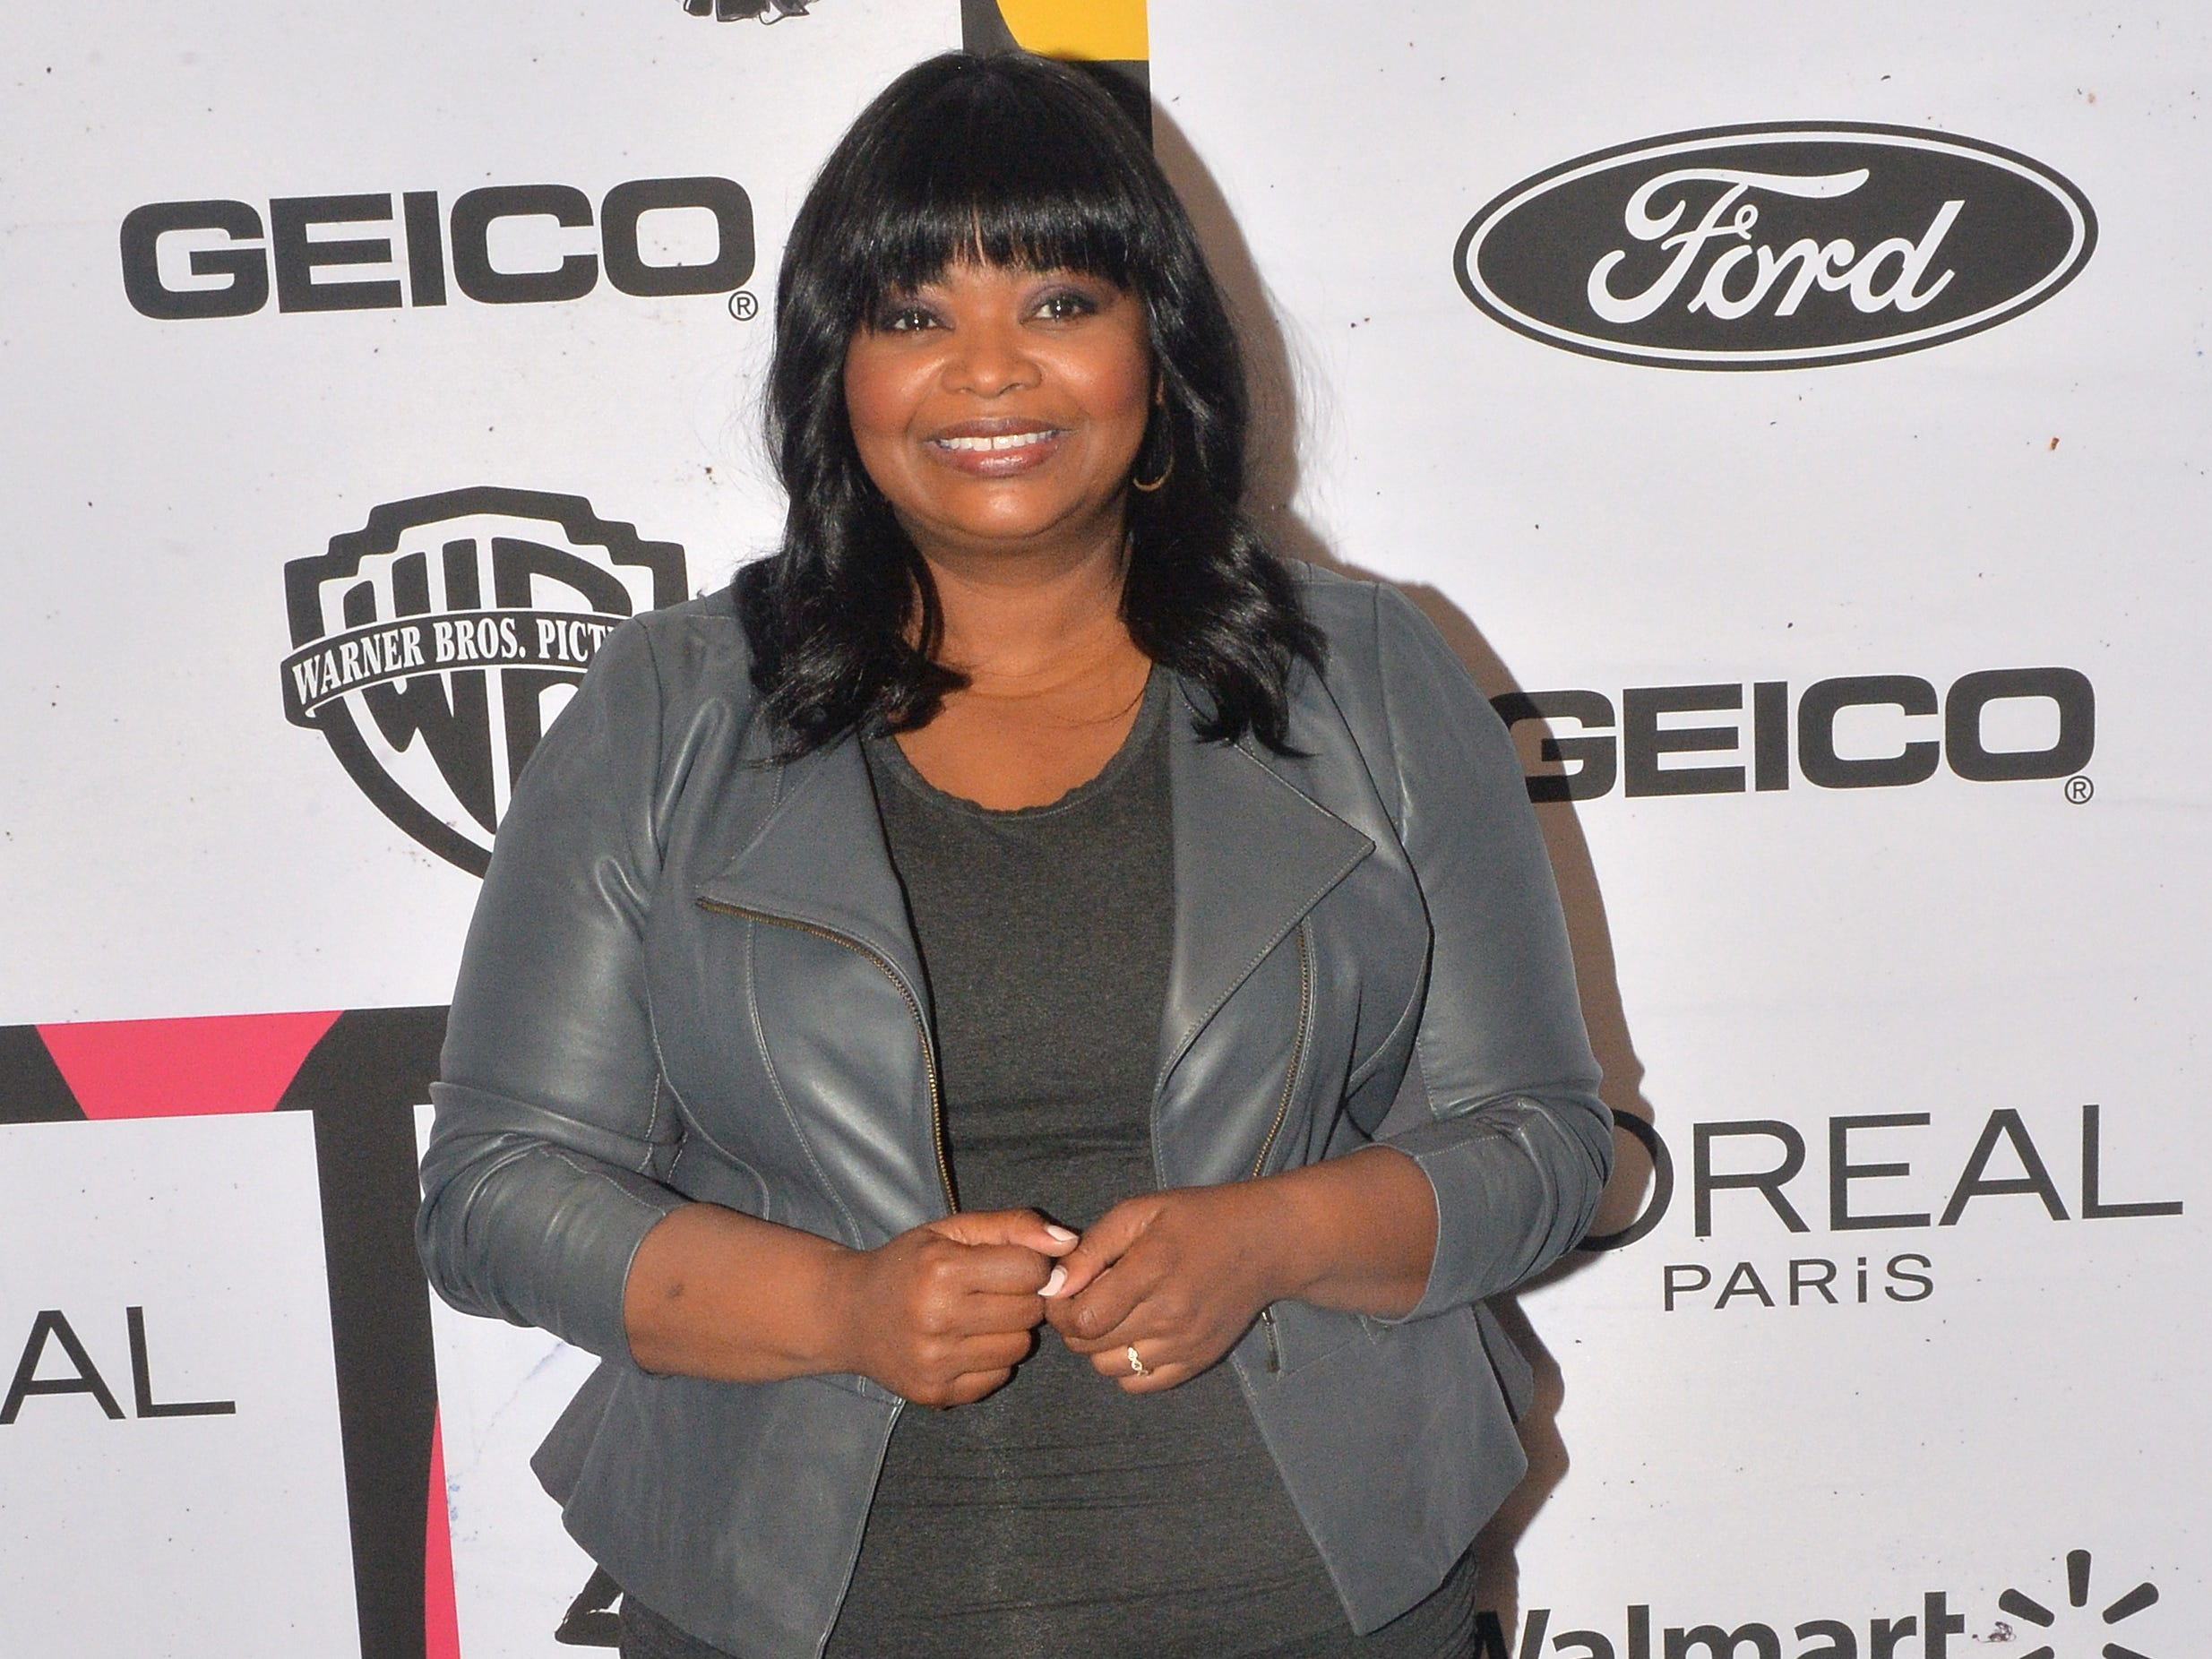 BEVERLY HILLS, CALIFORNIA - FEBRUARY 21: Octavia Spencer arrives at the 2019 Essence Black Women In Hollywood Awards at the Beverly Wilshire Four Seasons Hotel on February 21, 2019 in Beverly Hills, California. (Photo by Jerod Harris/FilmMagic) ORG XMIT: 775282713 ORIG FILE ID: 1131257133